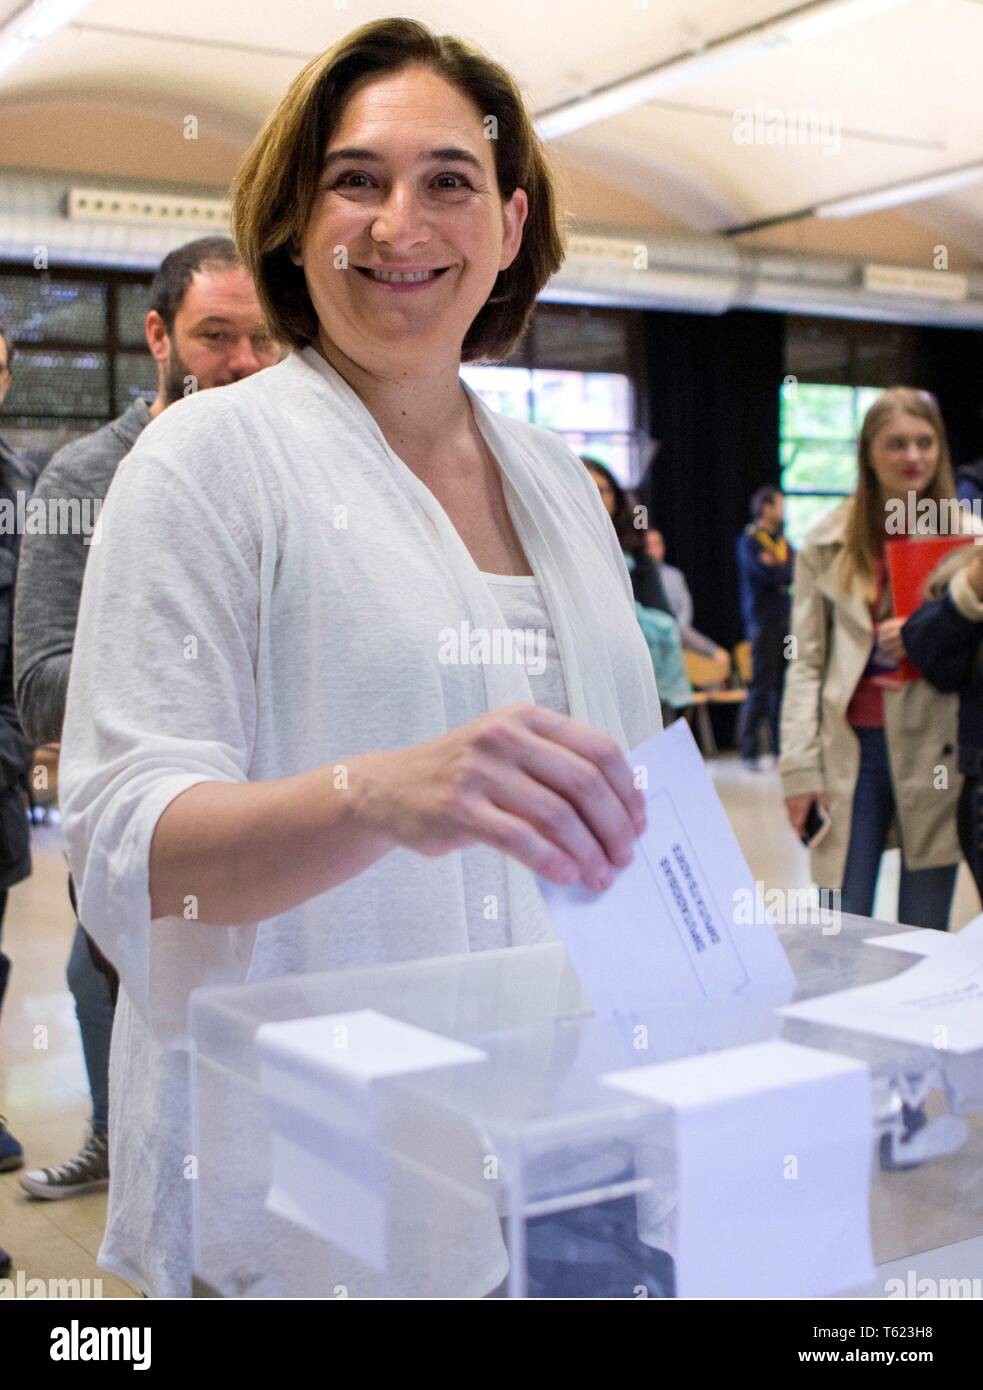 Mayoress of Barcelona, Ada Colau, casts her vote during general elections at a polling station in Barcelona, Spain. Nearly 36.9 million people are called to vote in the Spanish elections to choose the 350 seats that conform the Parliament's Lower Chamber and the 208 seats of the Upper Chamber for the next legislature. EFE/ Quique Garcia Credit: EFE News Agency/Alamy Live News - Stock Image